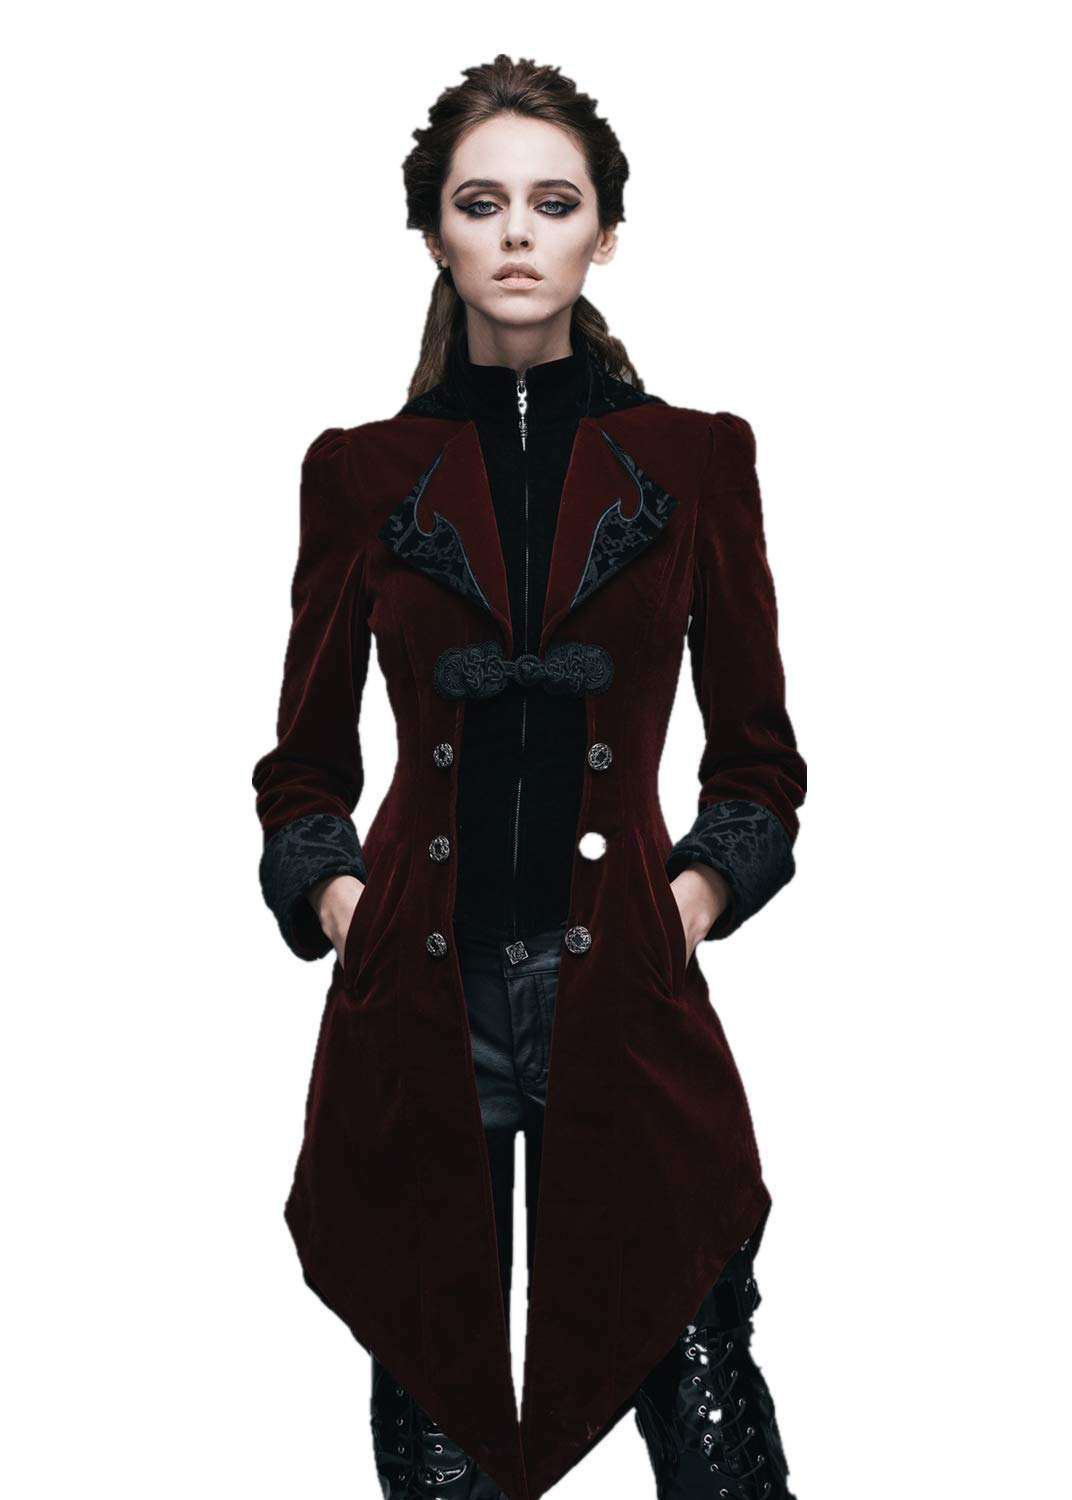 Steampunk Swallow Tail Coat Gothic Women's Long Winter Jacket Halloween Costumes